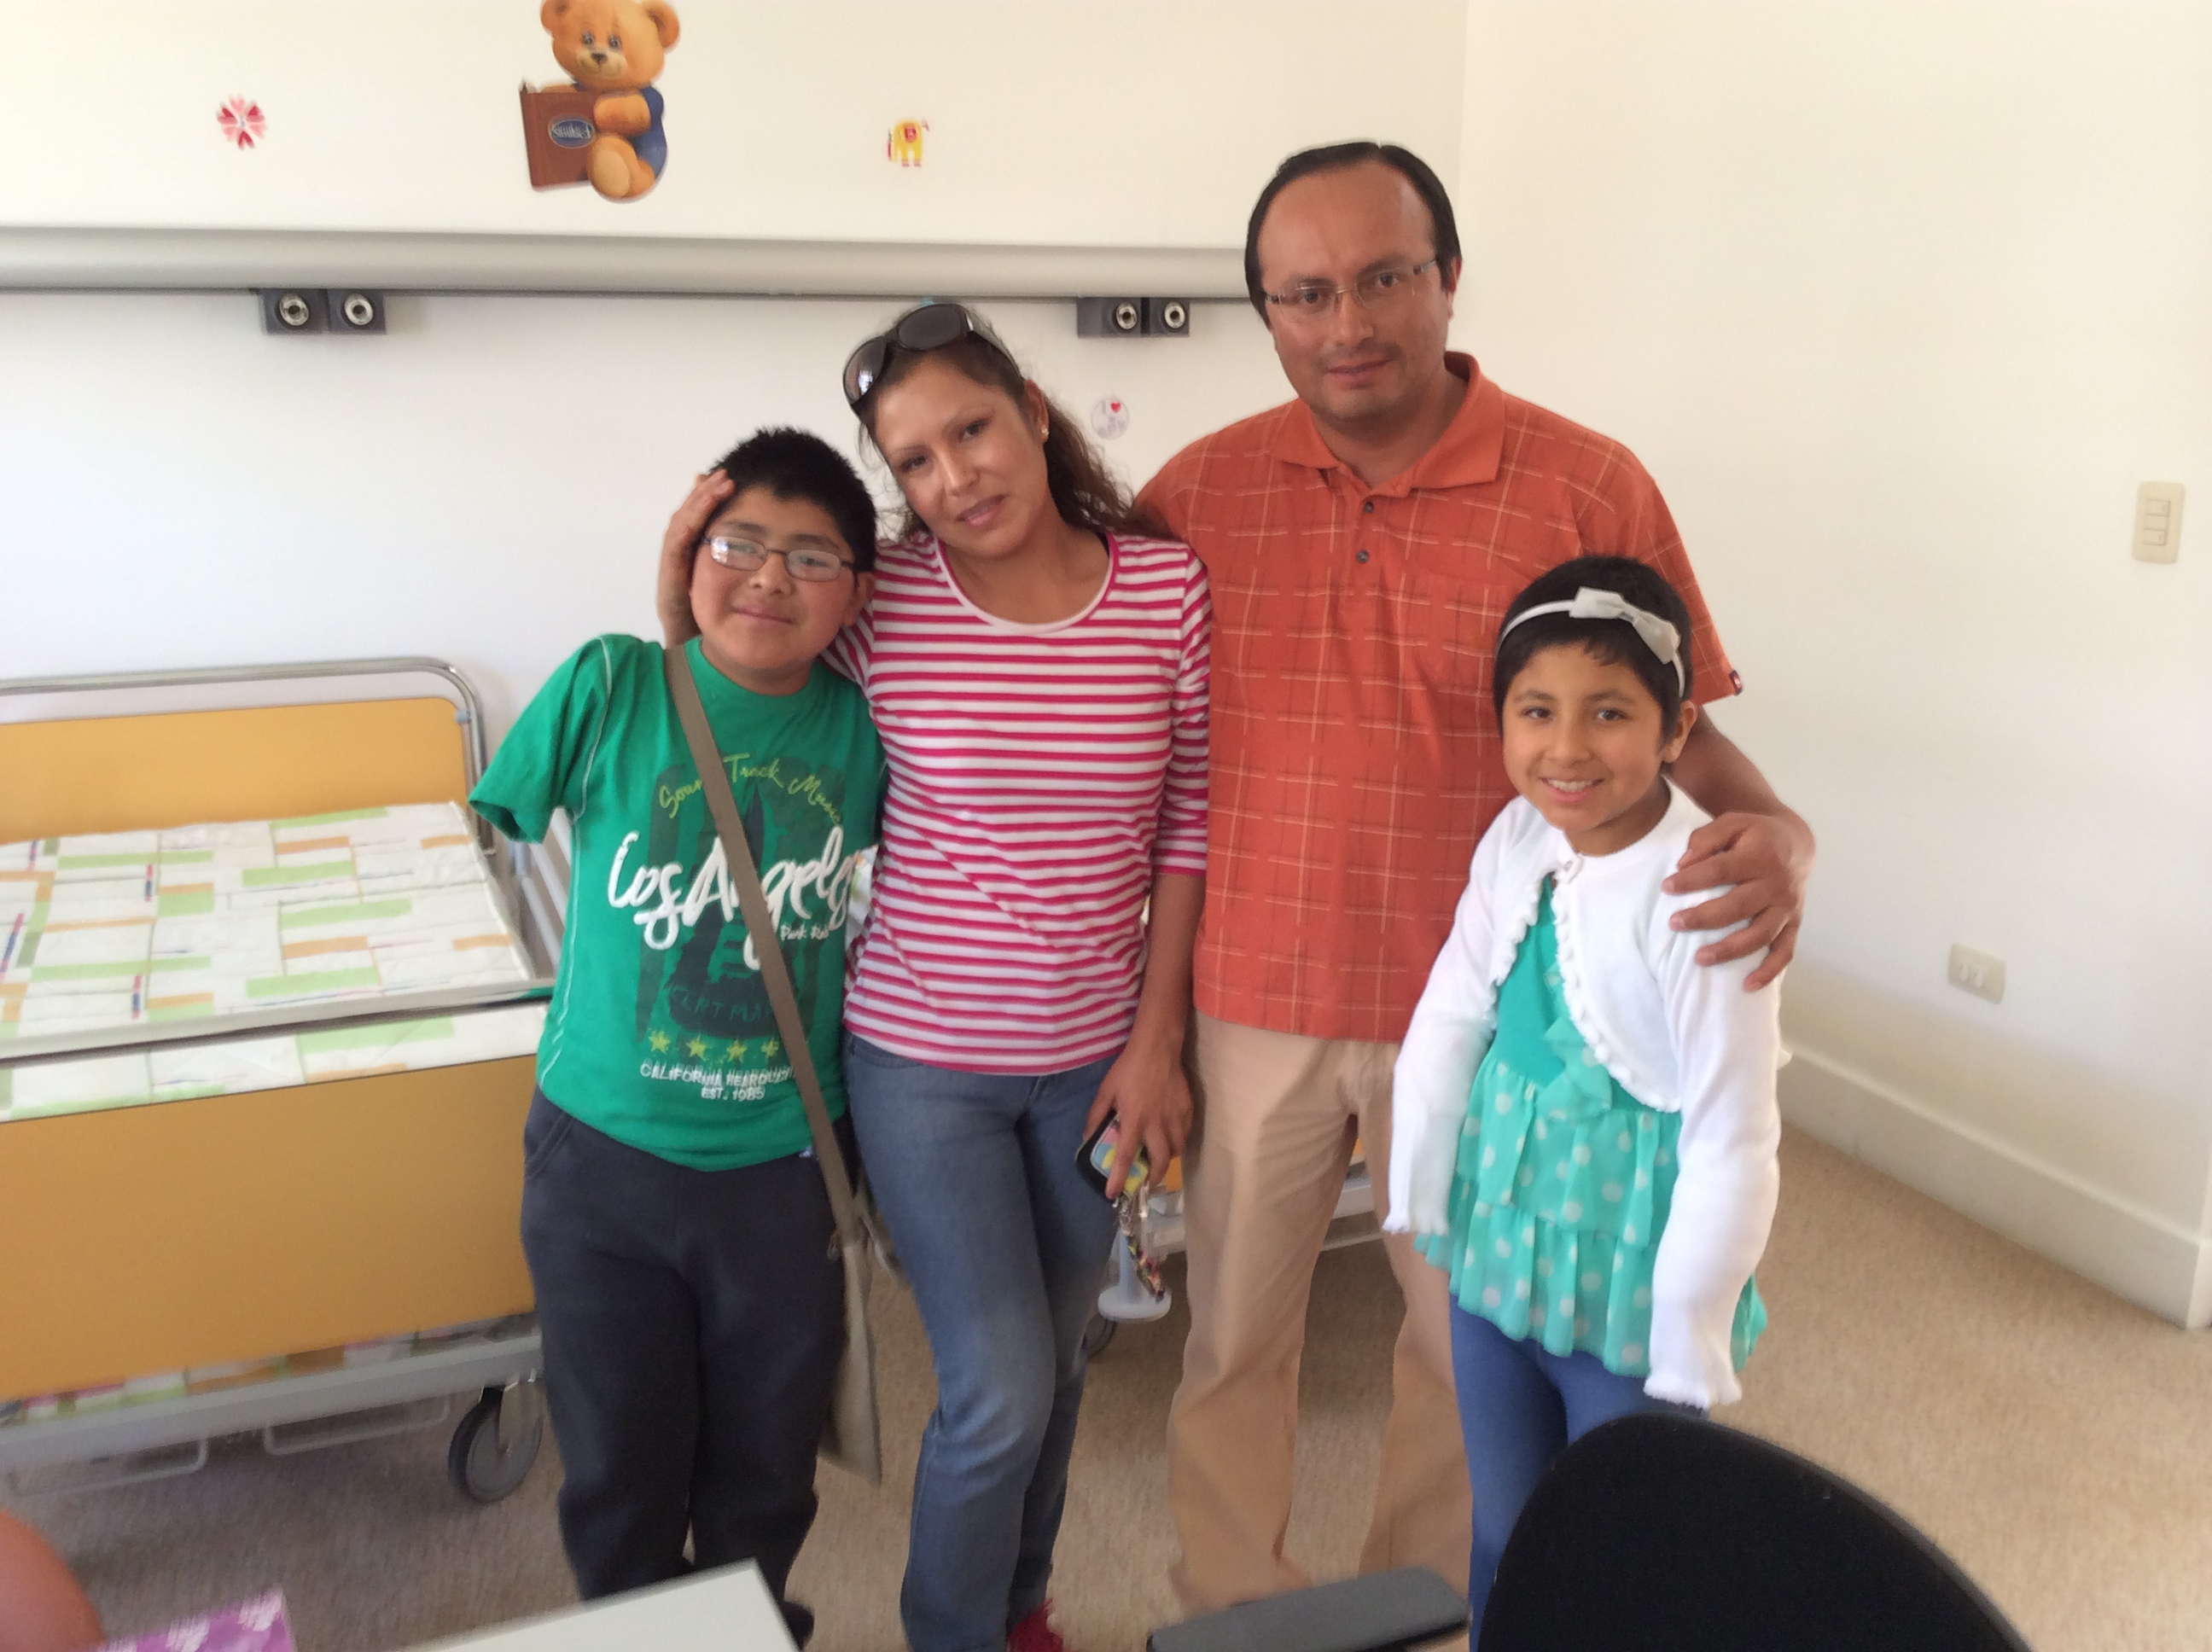 Thank you very much to the family Arnajan from Arequipa